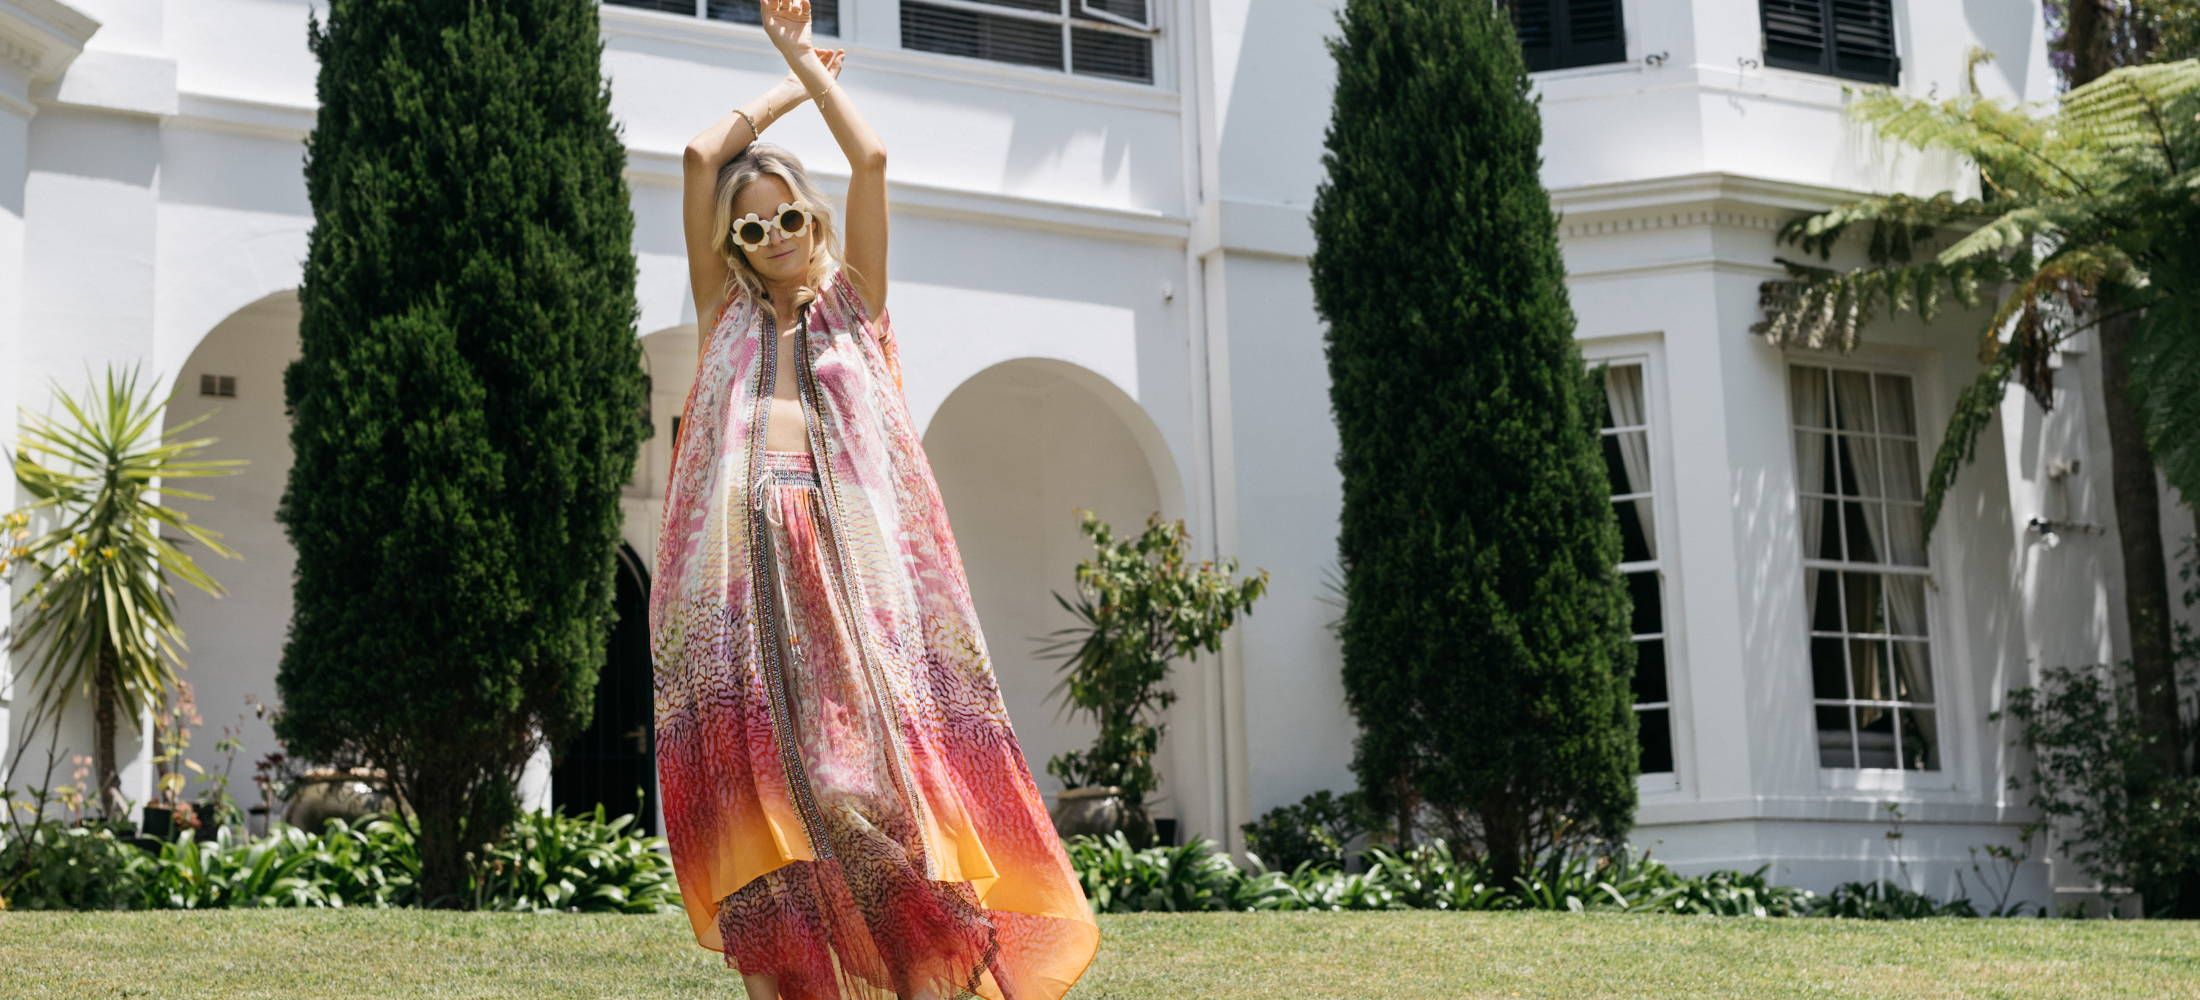 Model in CAMILLA pink and orange printed layer and pants in front of house.